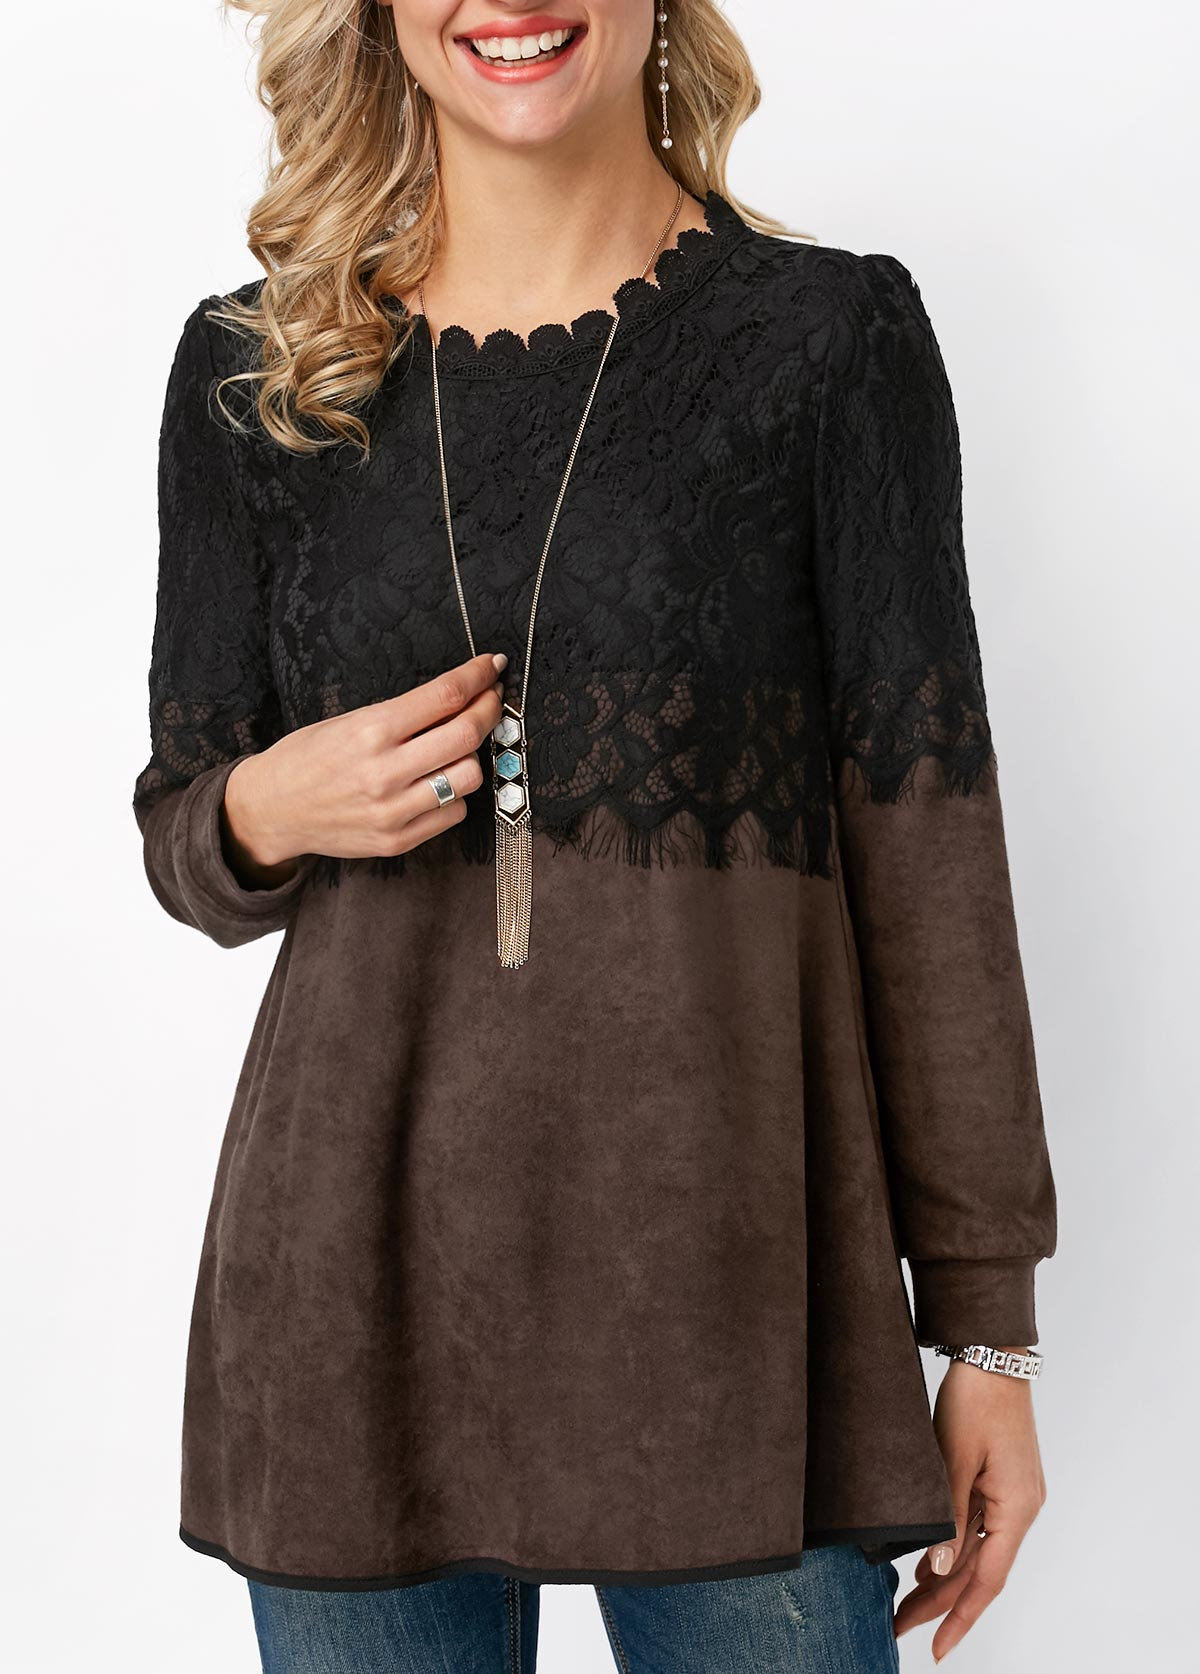 ROTITA Lace Panel Long Sleeve Round Neck T Shirt